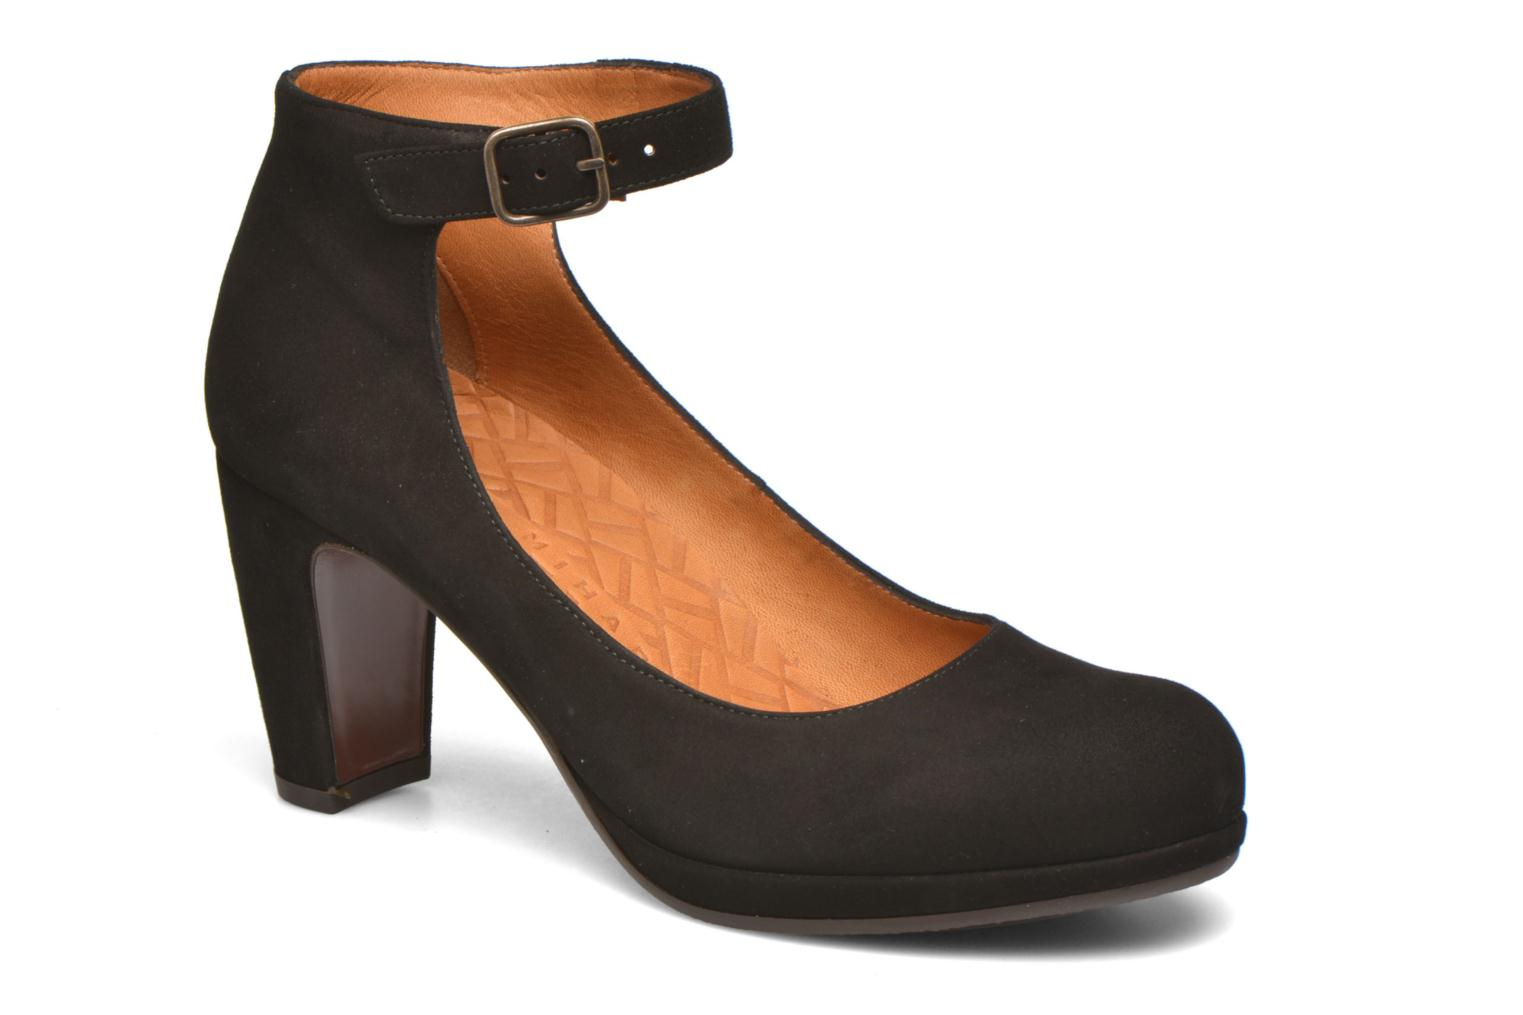 Marques Chaussure luxe femme Chie Mihara femme Mancha Ante Granate